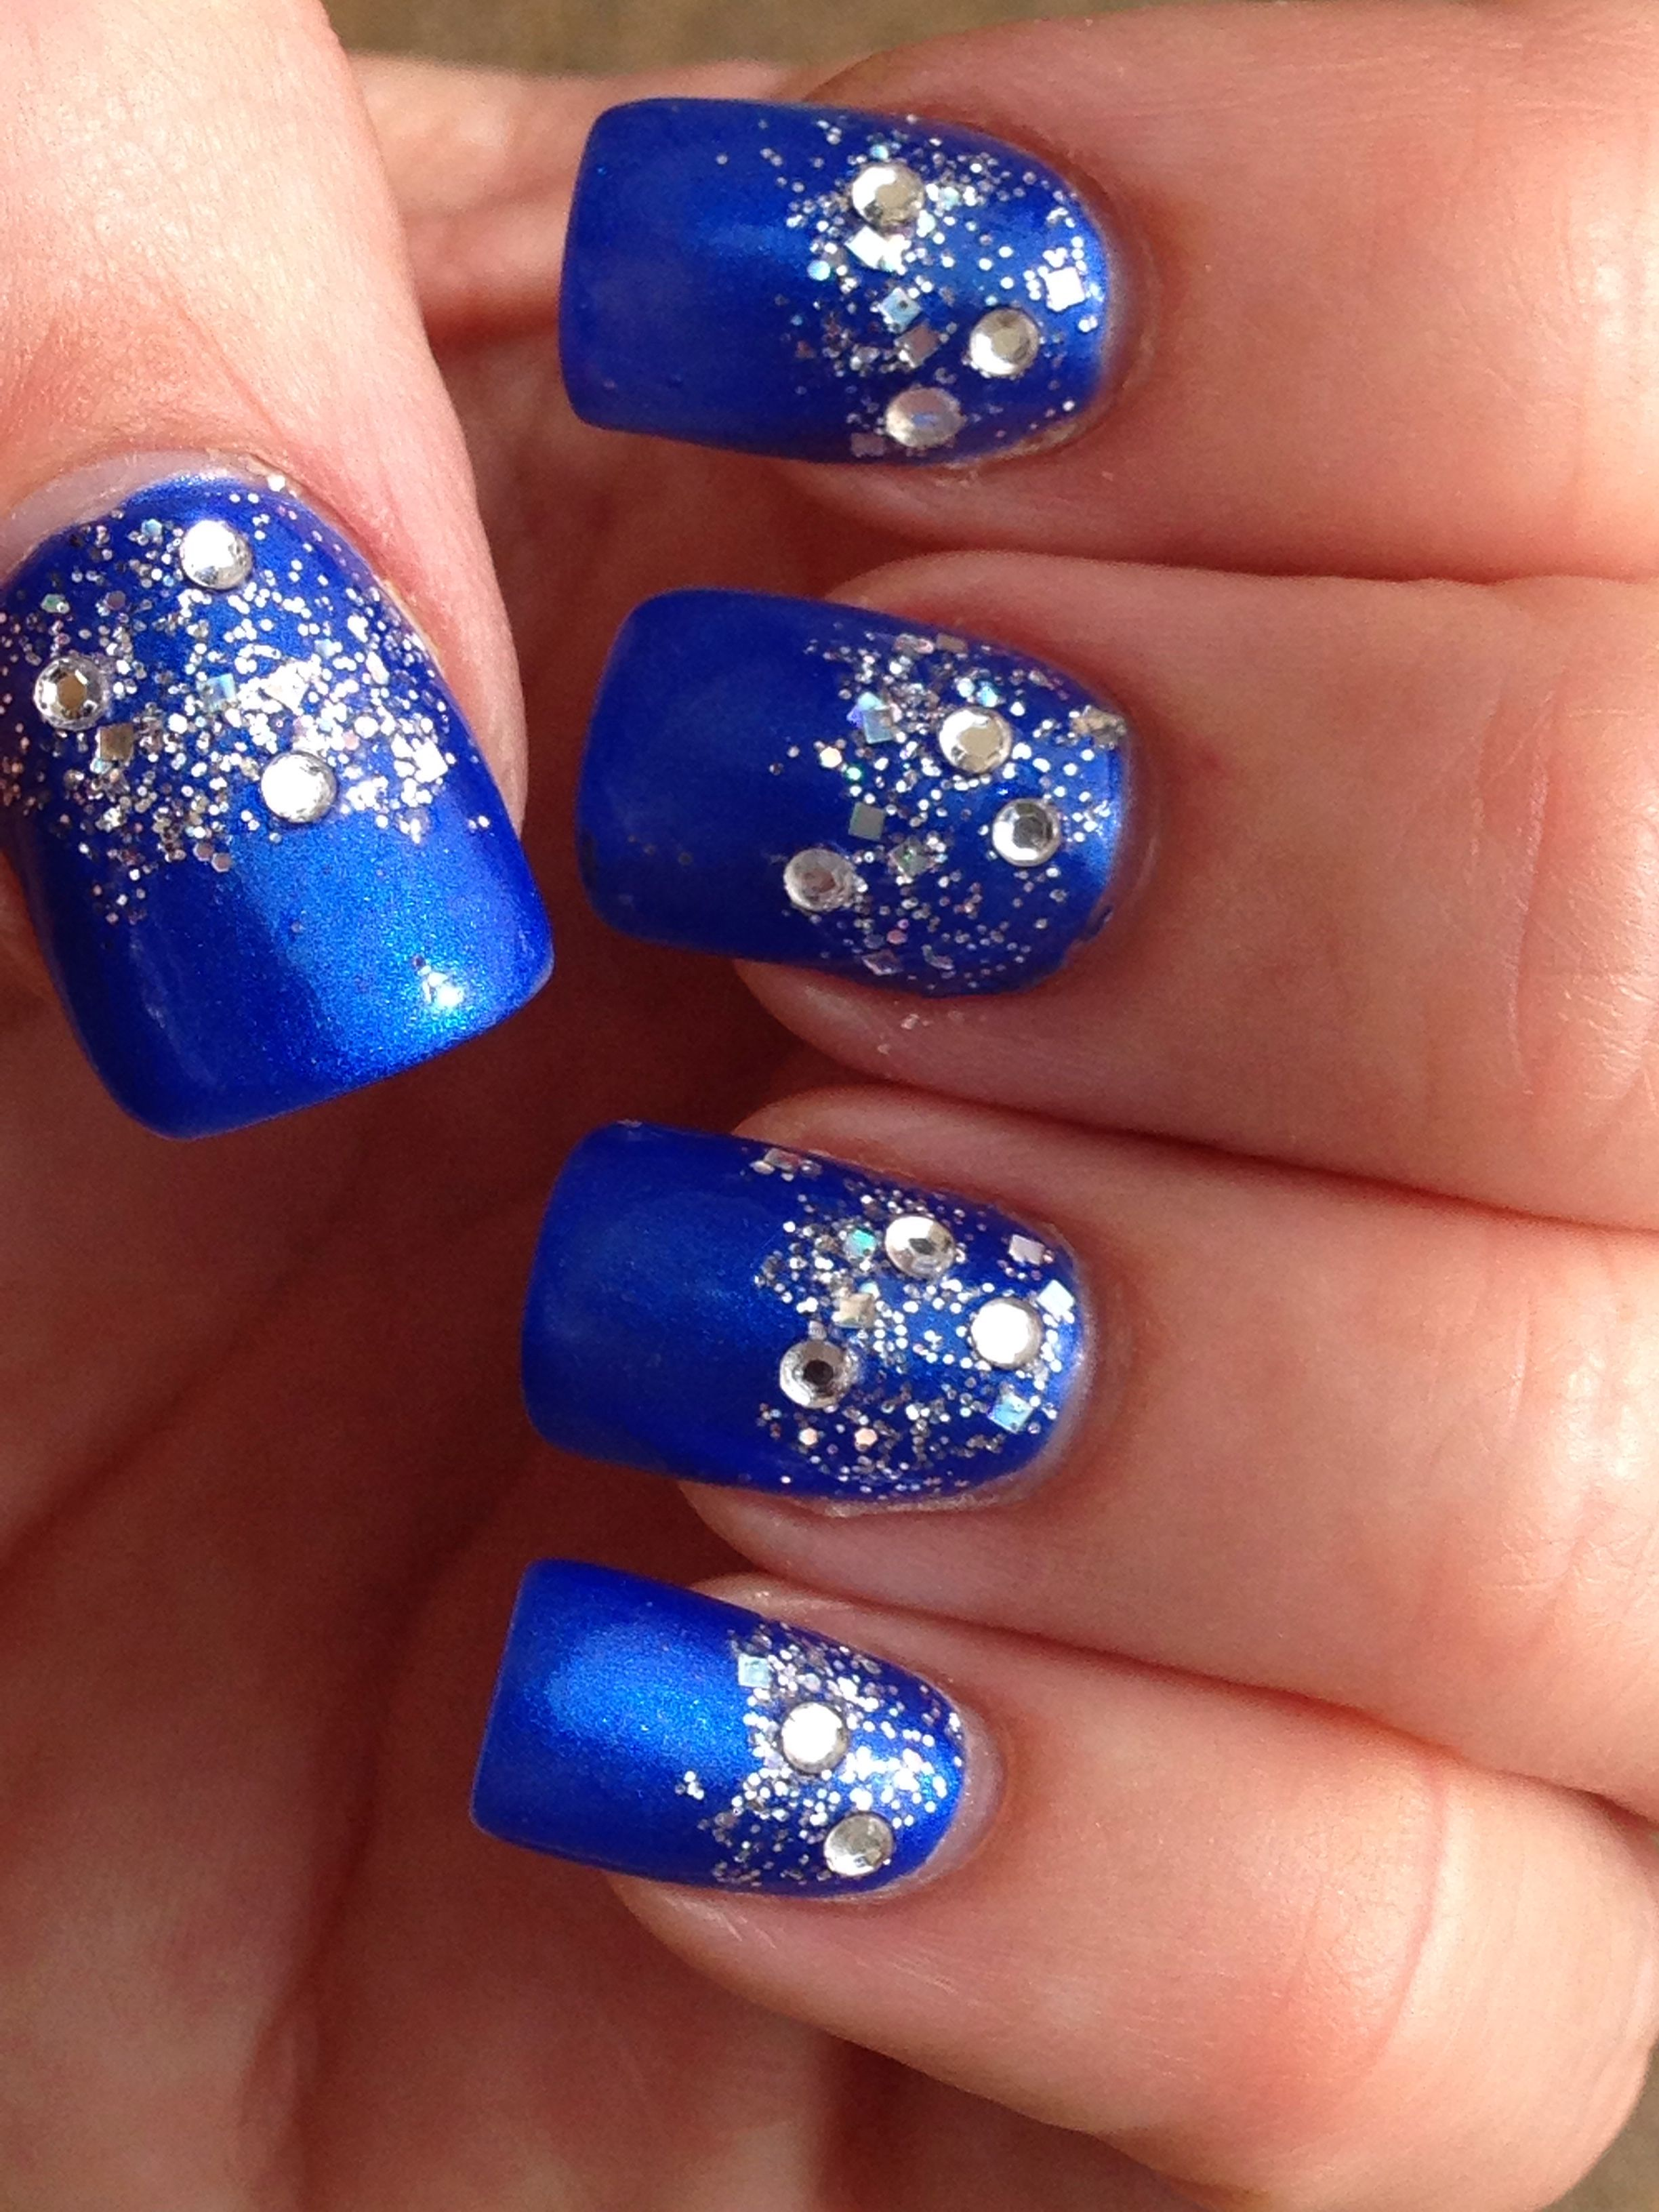 Dallas Cowboys Nail Art Bling On Bling With Silver Ombr Glitter